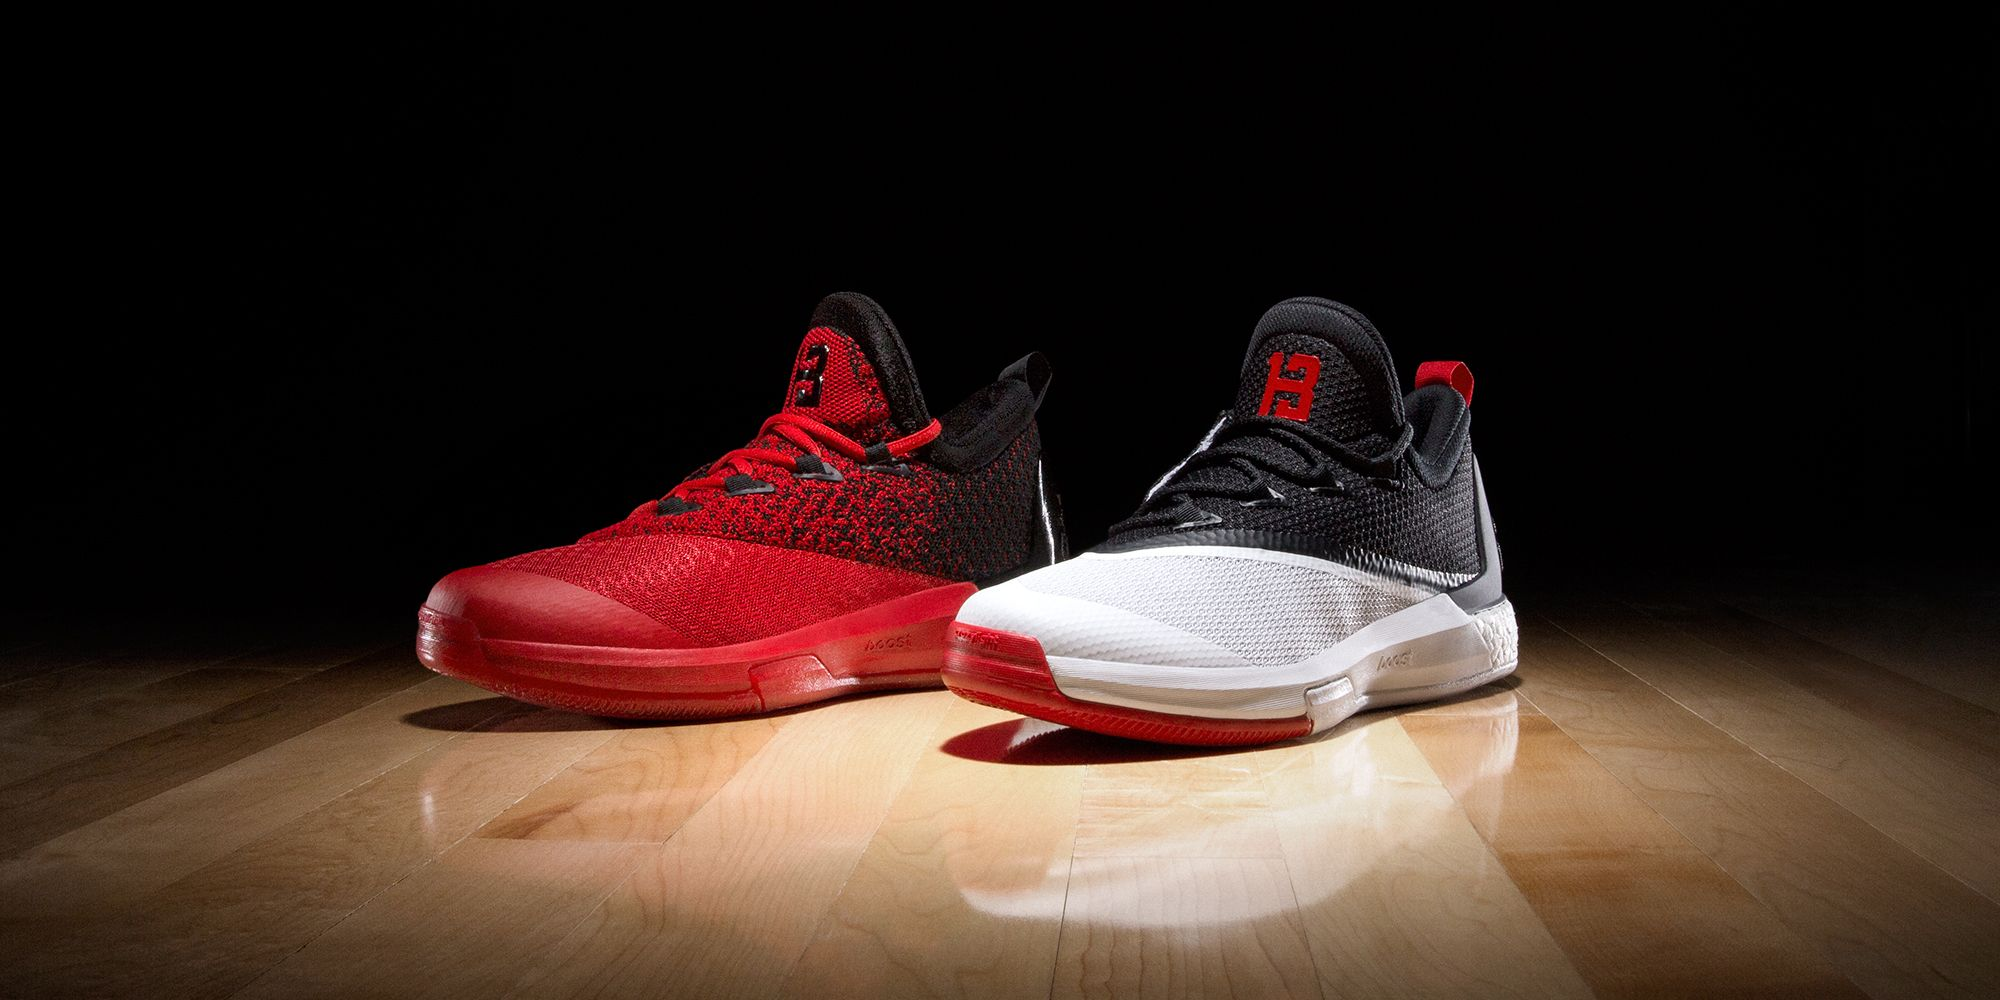 Adidas crazylight boost low 2016 bred black red mens basketball shoes - Adidas James Harden Reveal Crazylight Boost 2 5 James Harden Shoesbasketball